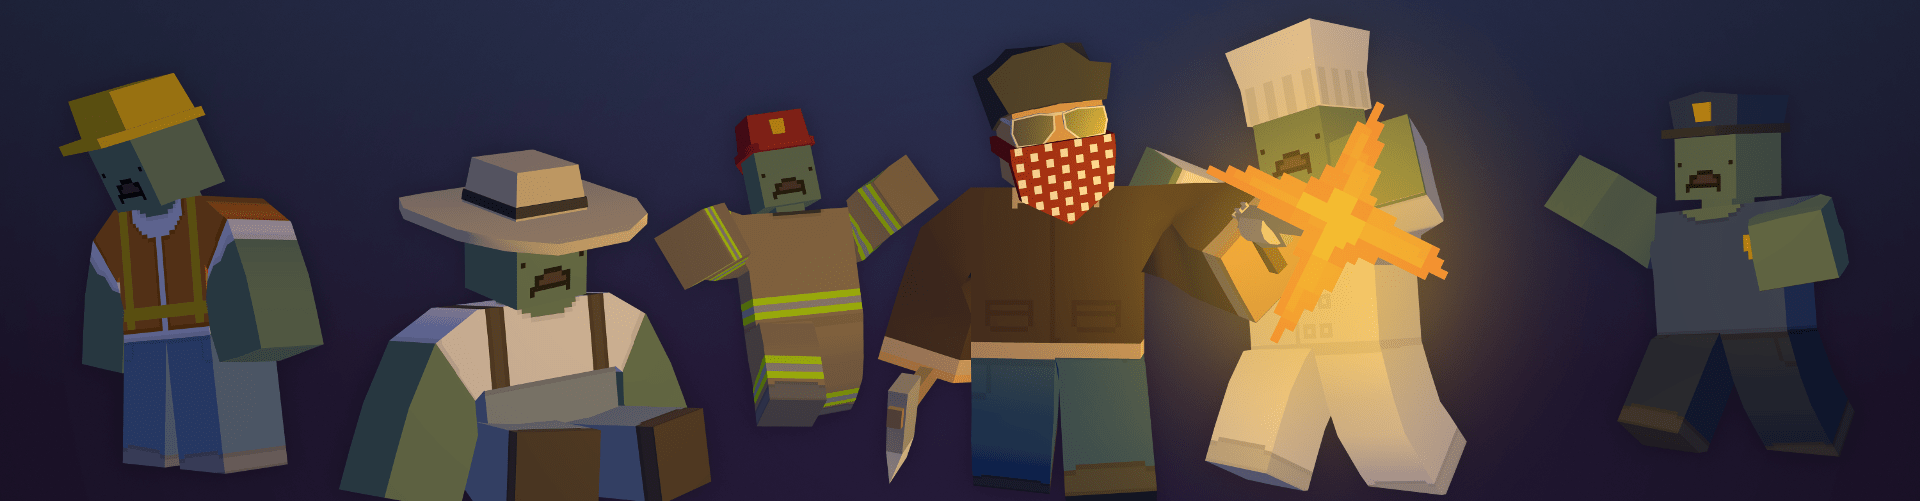 unturned cover image